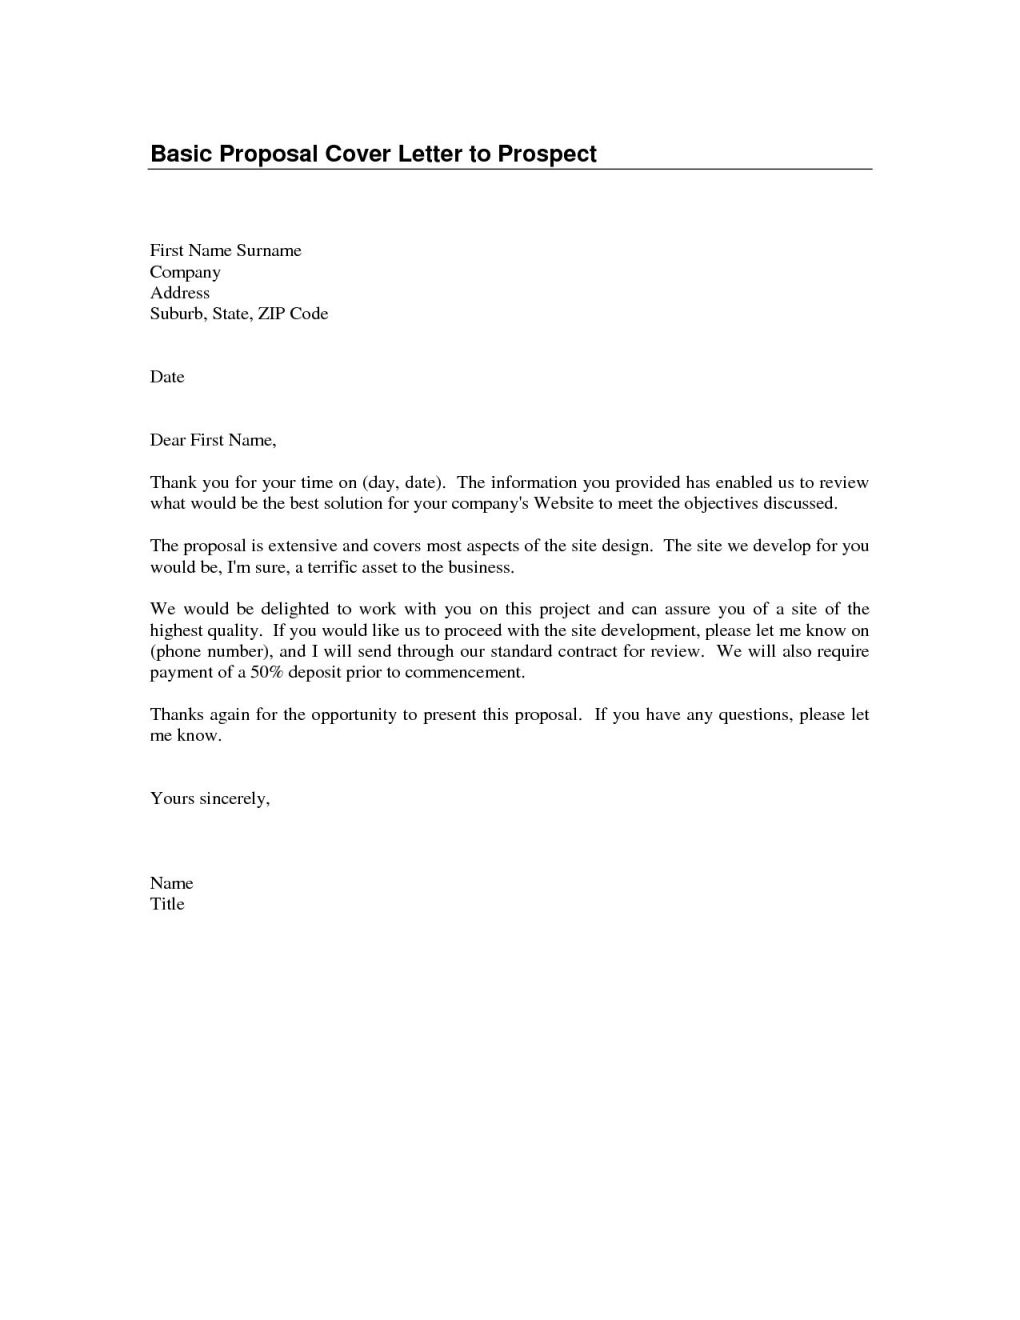 Prospecting Letter Template - Wonderful Prospecting Letter Templates Lj15 – Documentaries for Change